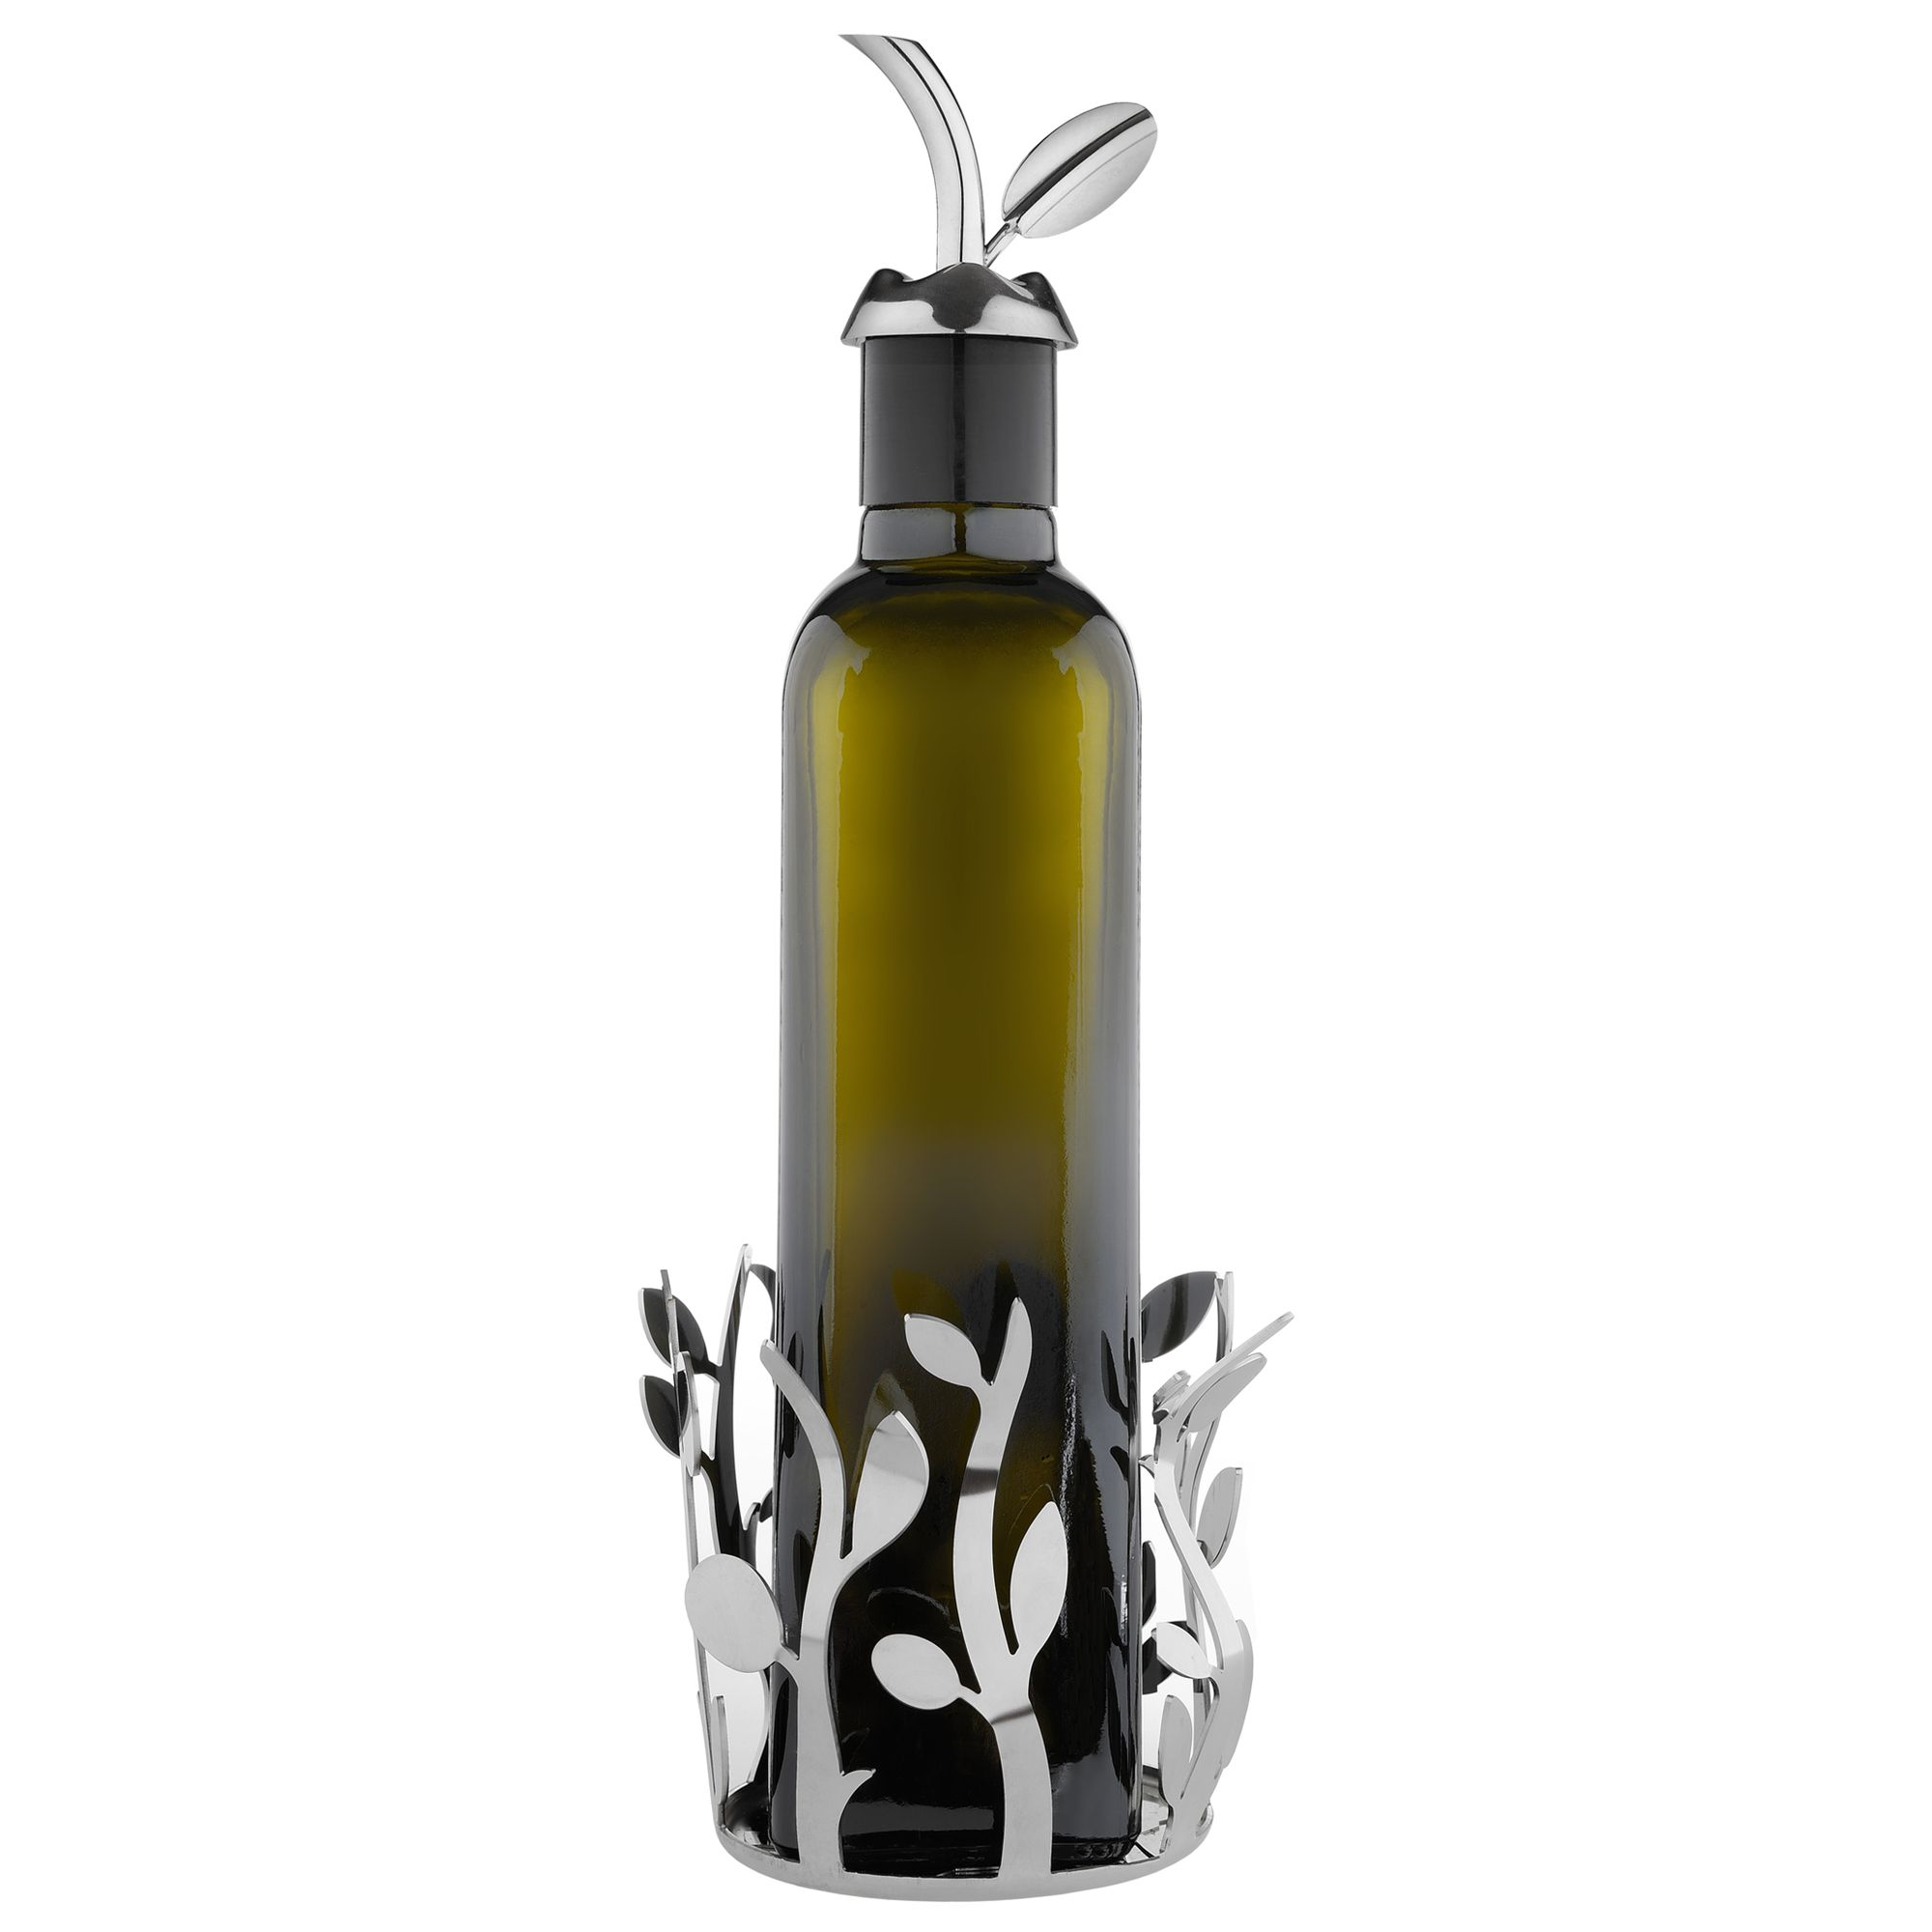 Alessi Olive Oil Bottle Holder at John Lewis & Partners